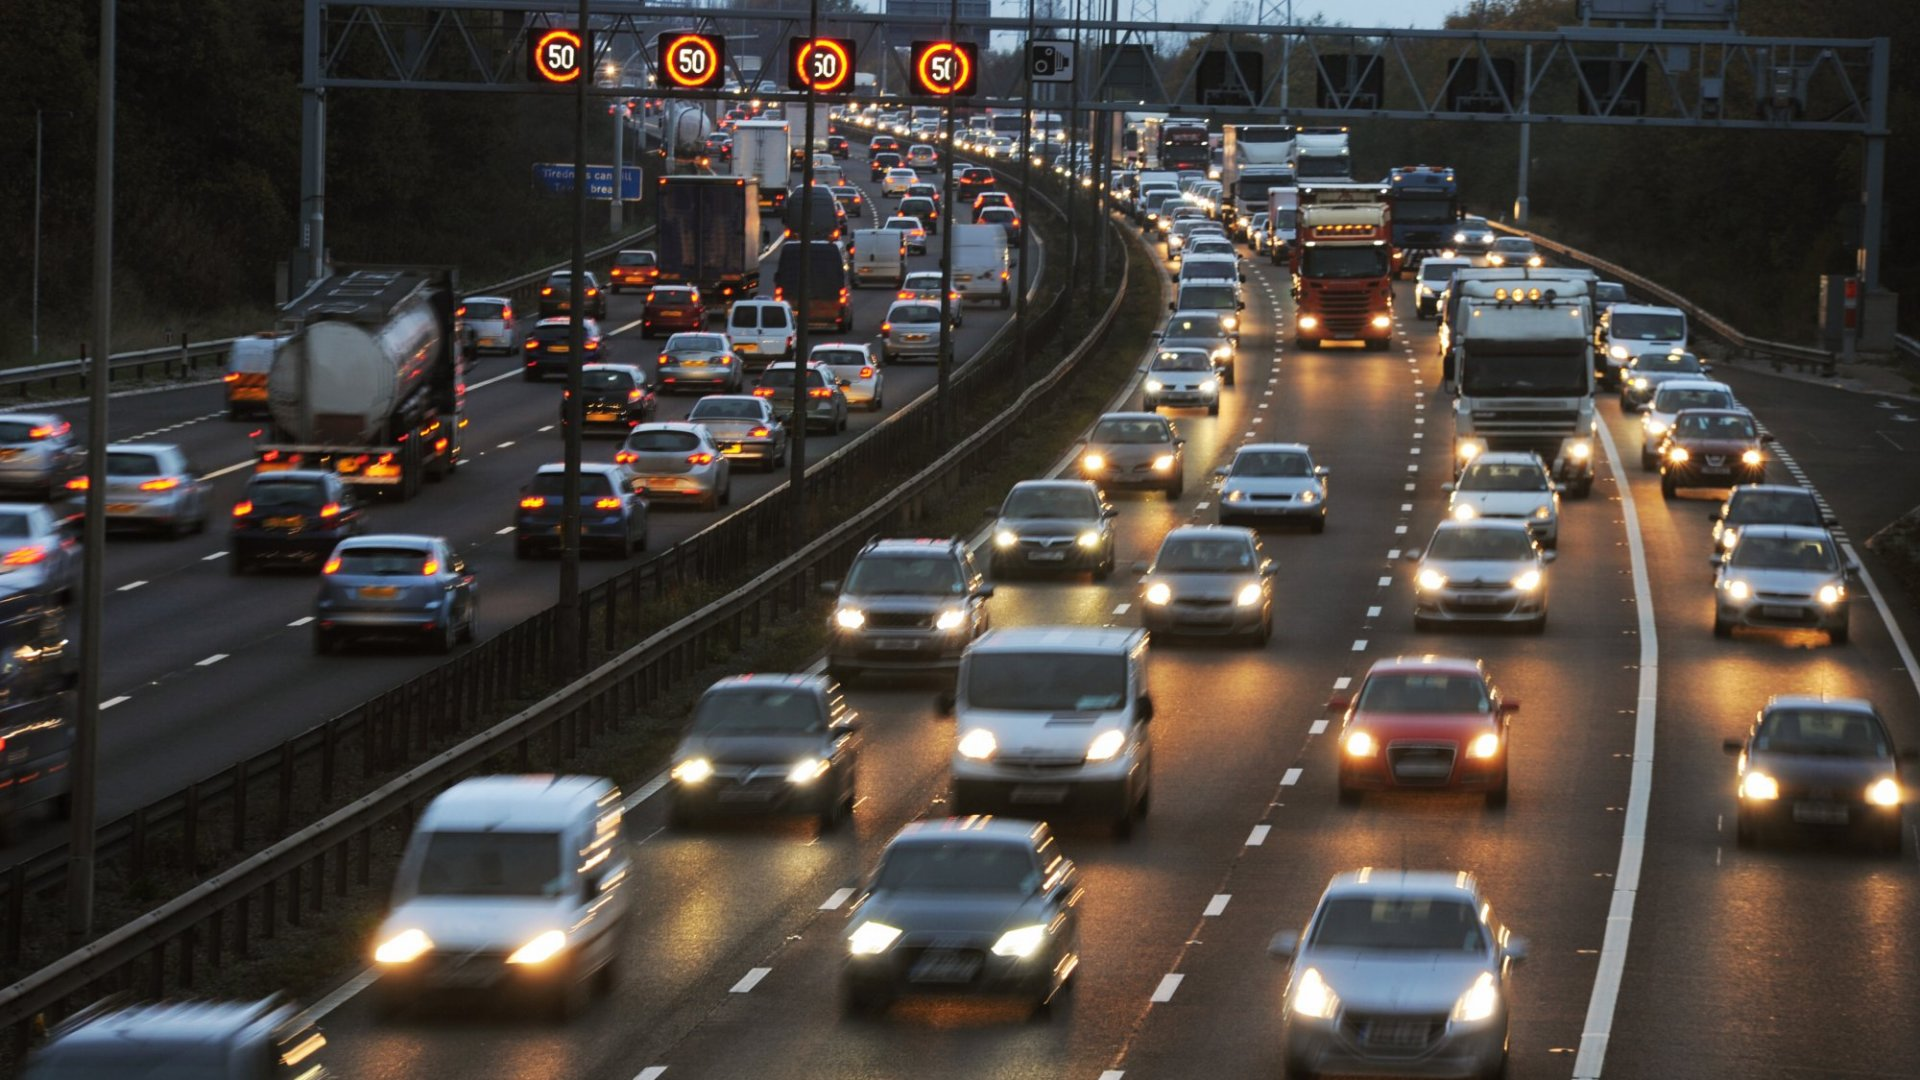 Want to Stay Married? Science Says Reconsider a Long Commute (Since the Money Isn't Worth It)